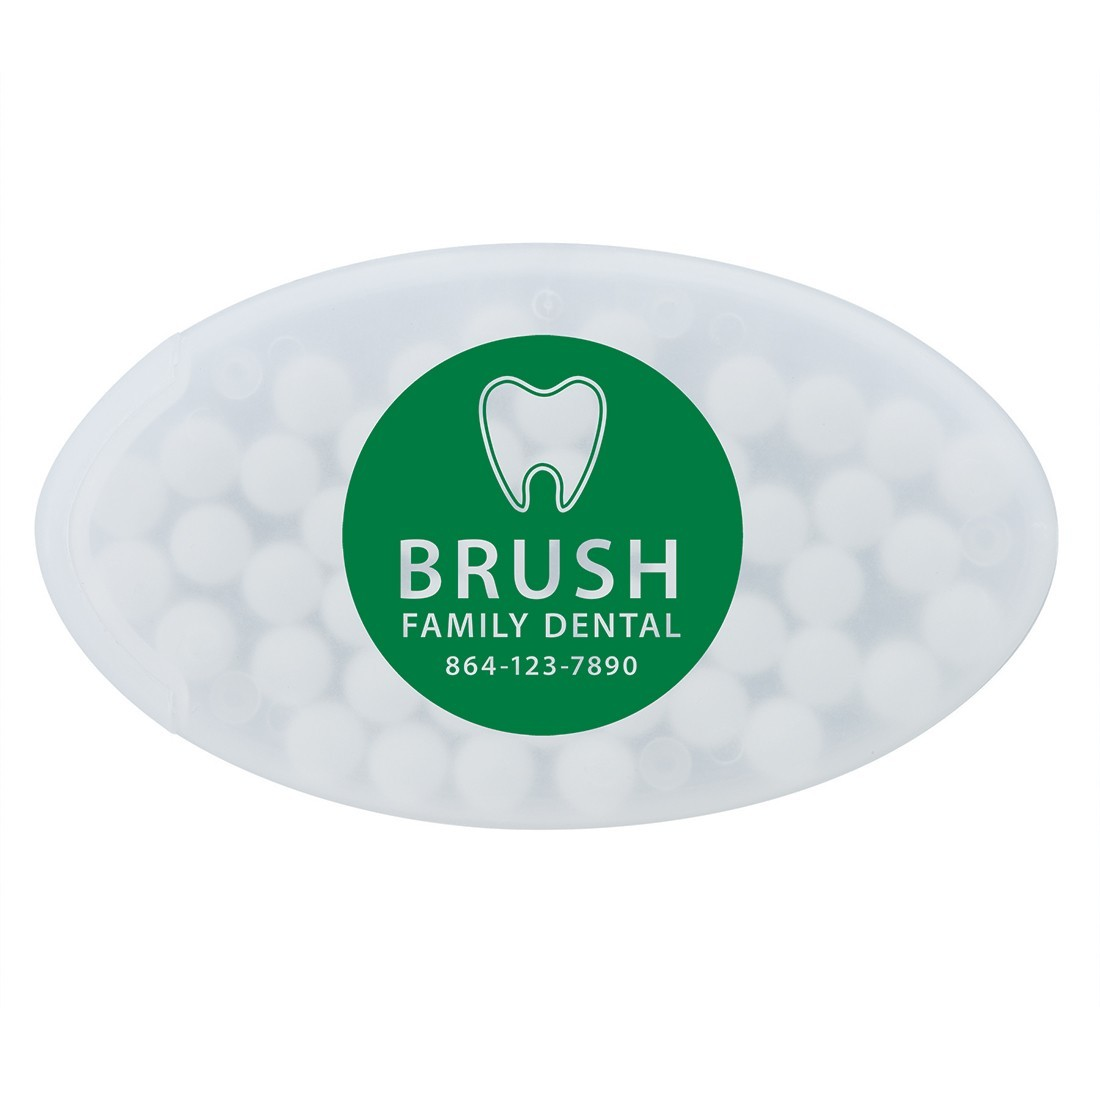 Custom SmileCare Oval Mint Containers [image]